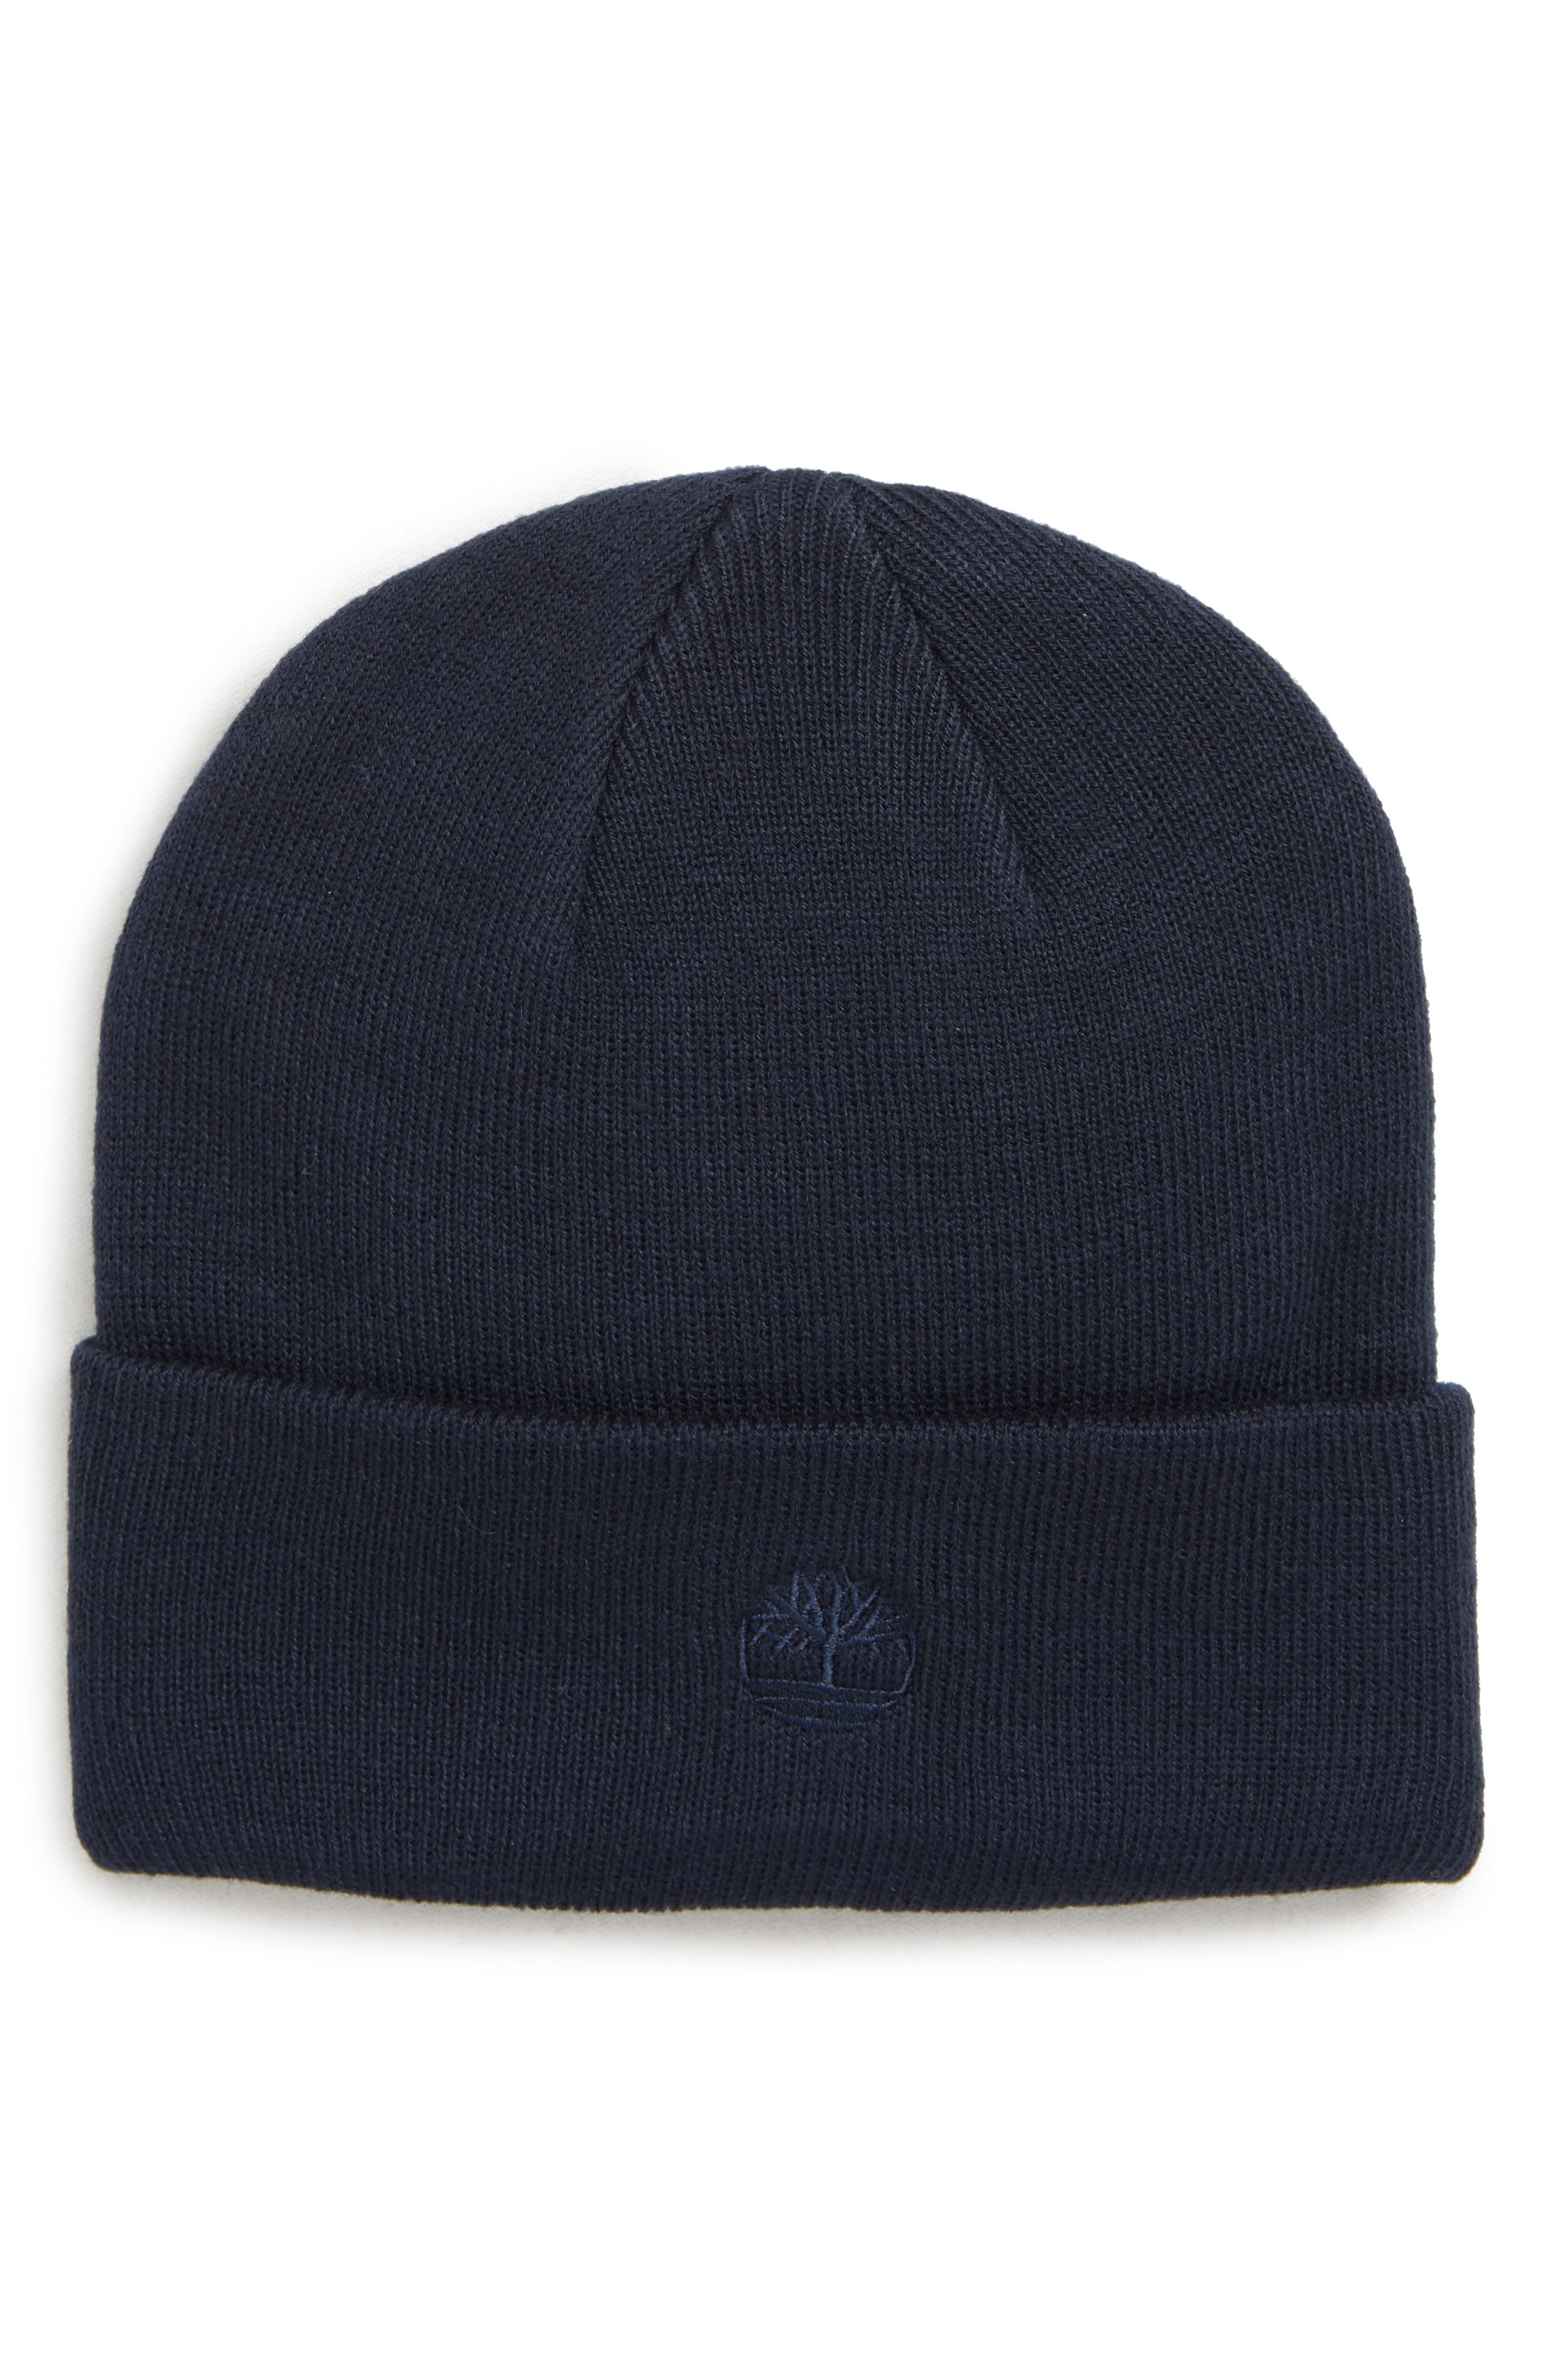 TIMBERLAND EMBROIDERED LOGO CUFF BEANIE - BLUE.  timberland ... 1990df9bc09c